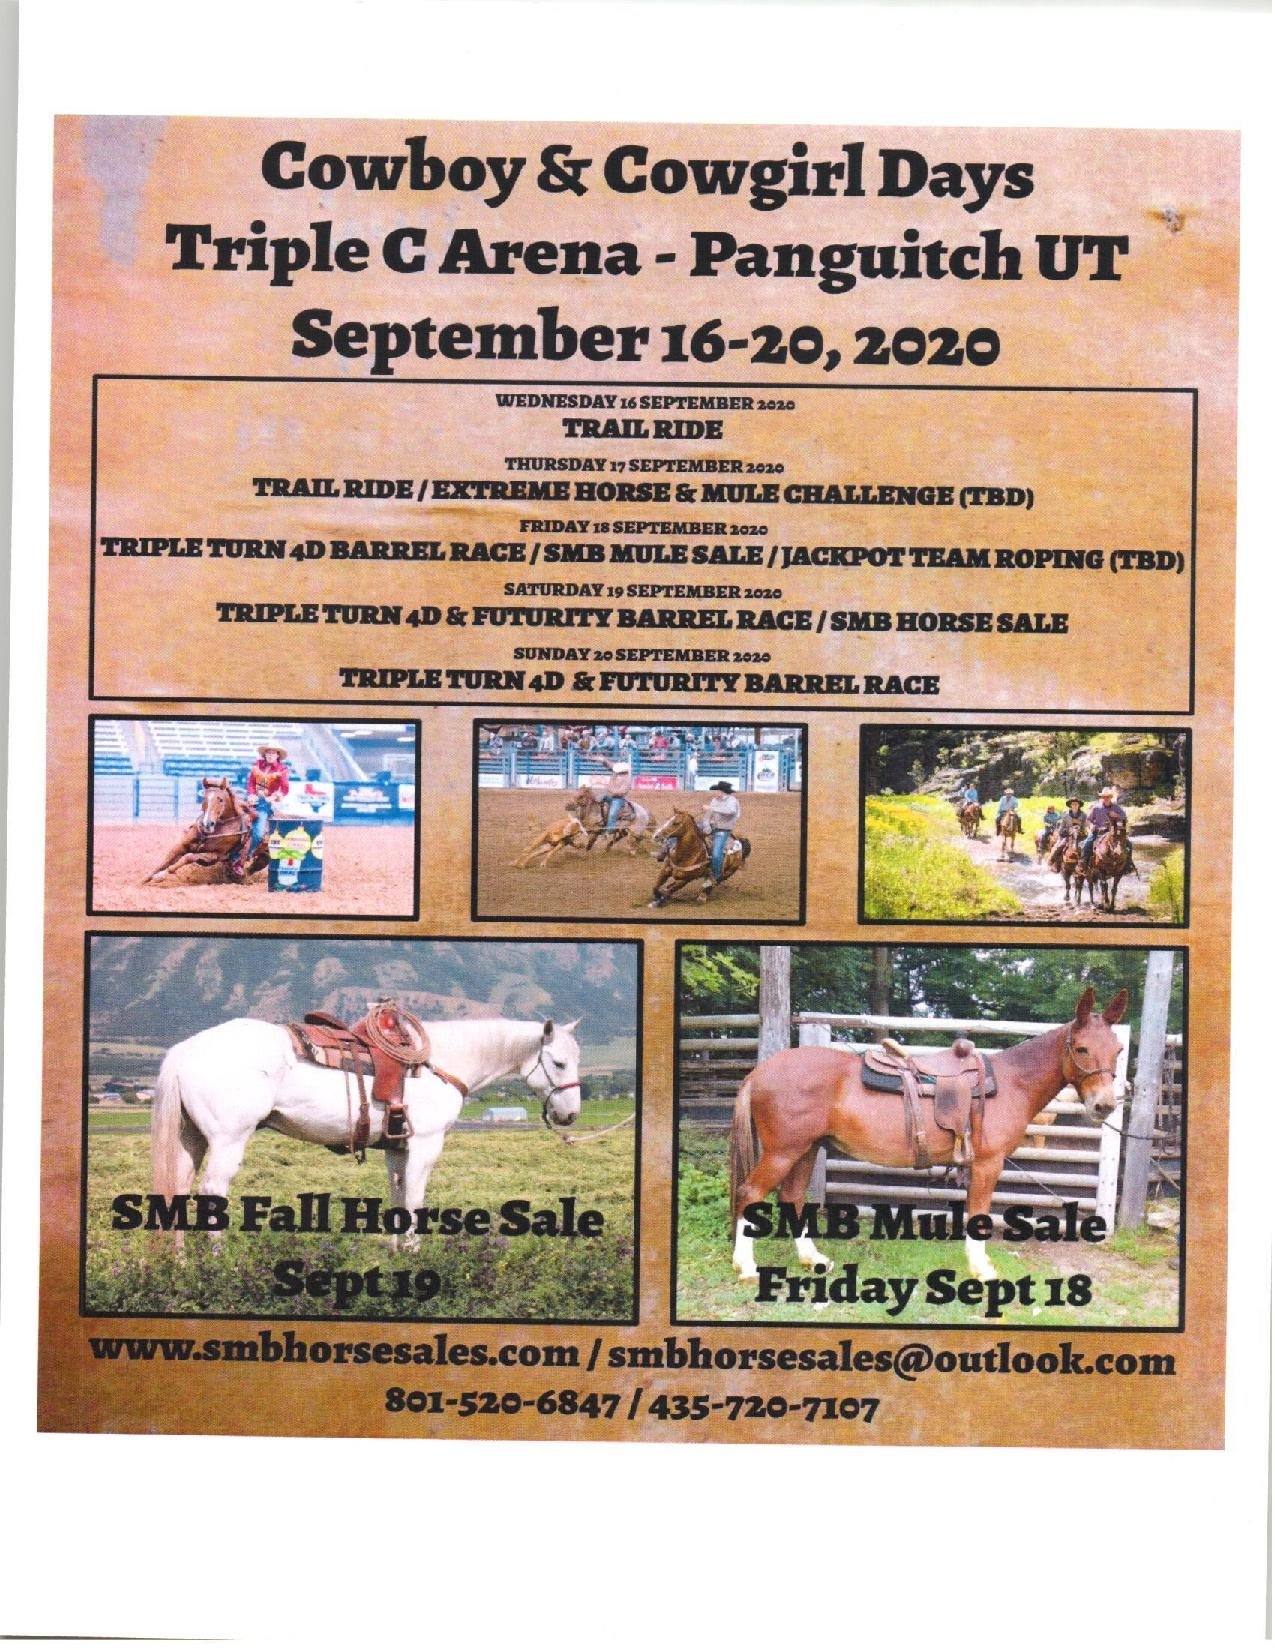 Cowboy and Cowgirl Days @ Triple C Arena